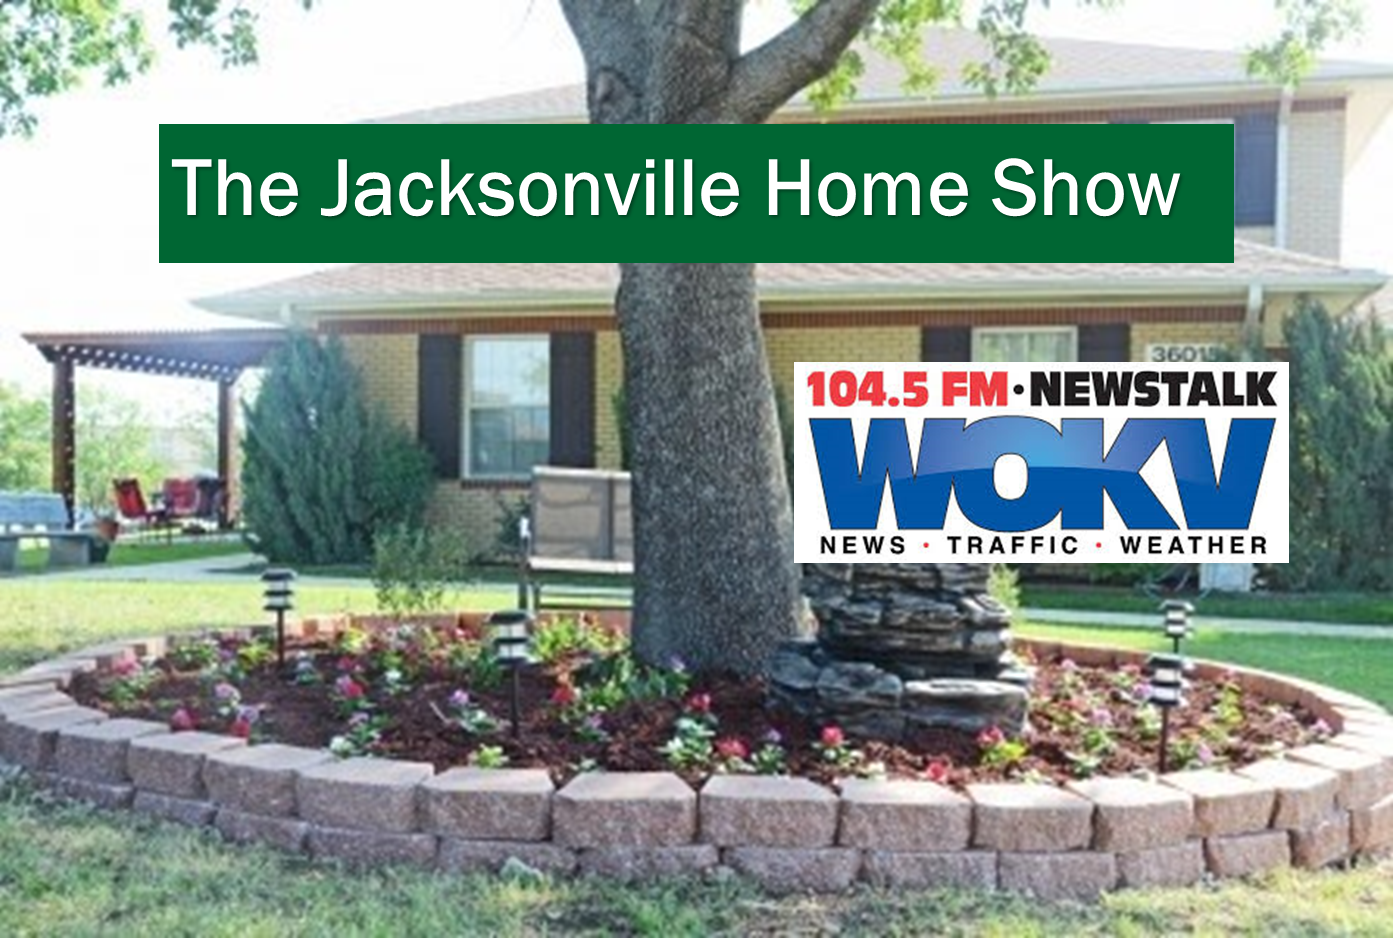 The Jacksonville Home Show